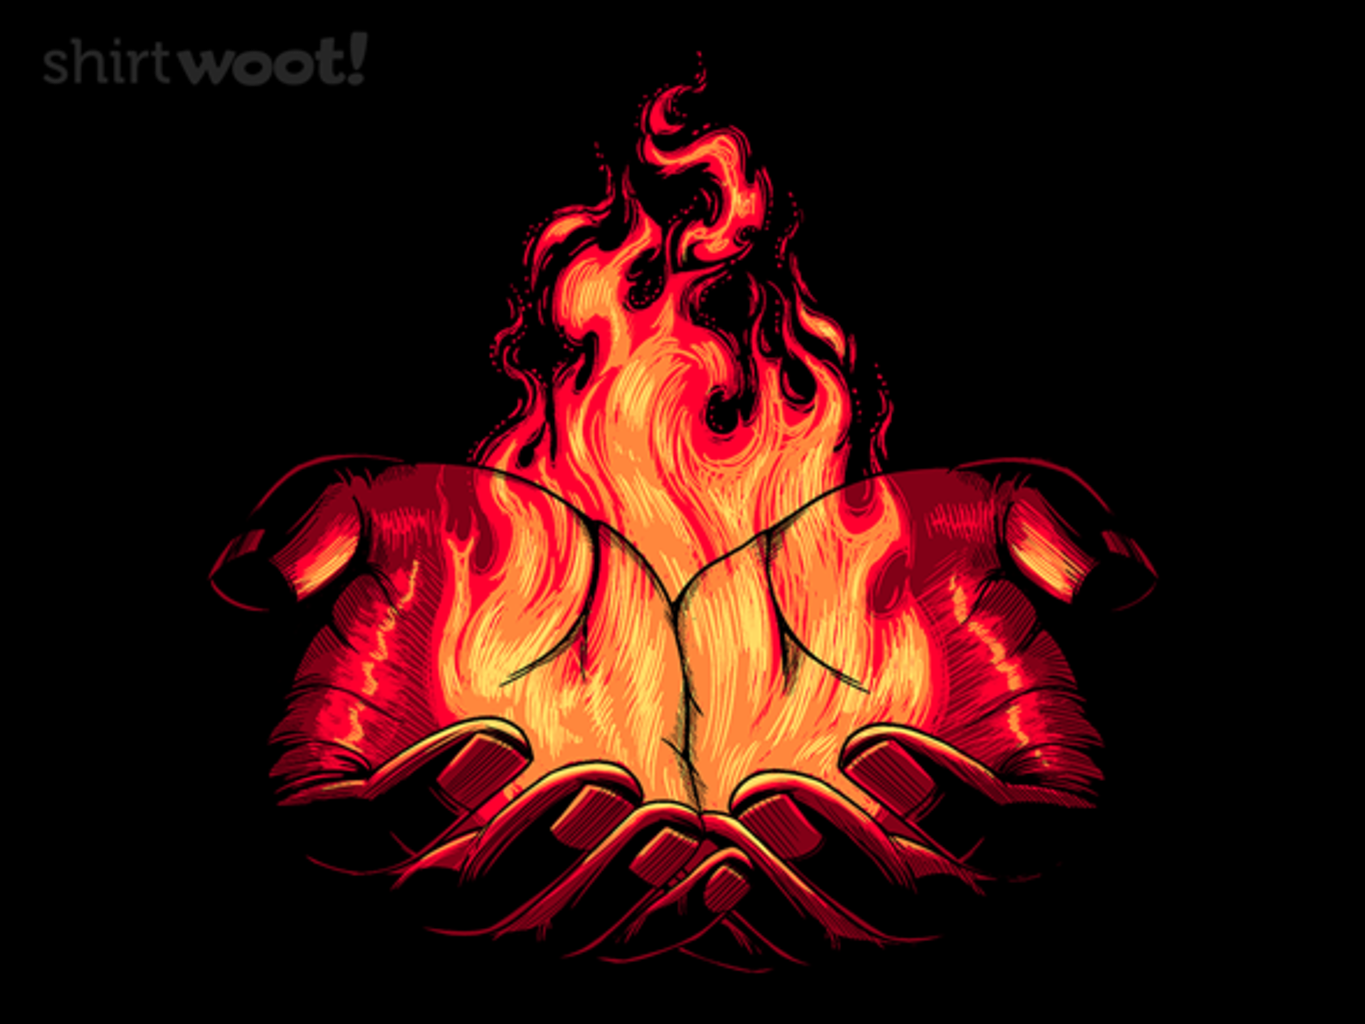 Woot!: The Gift of Fire